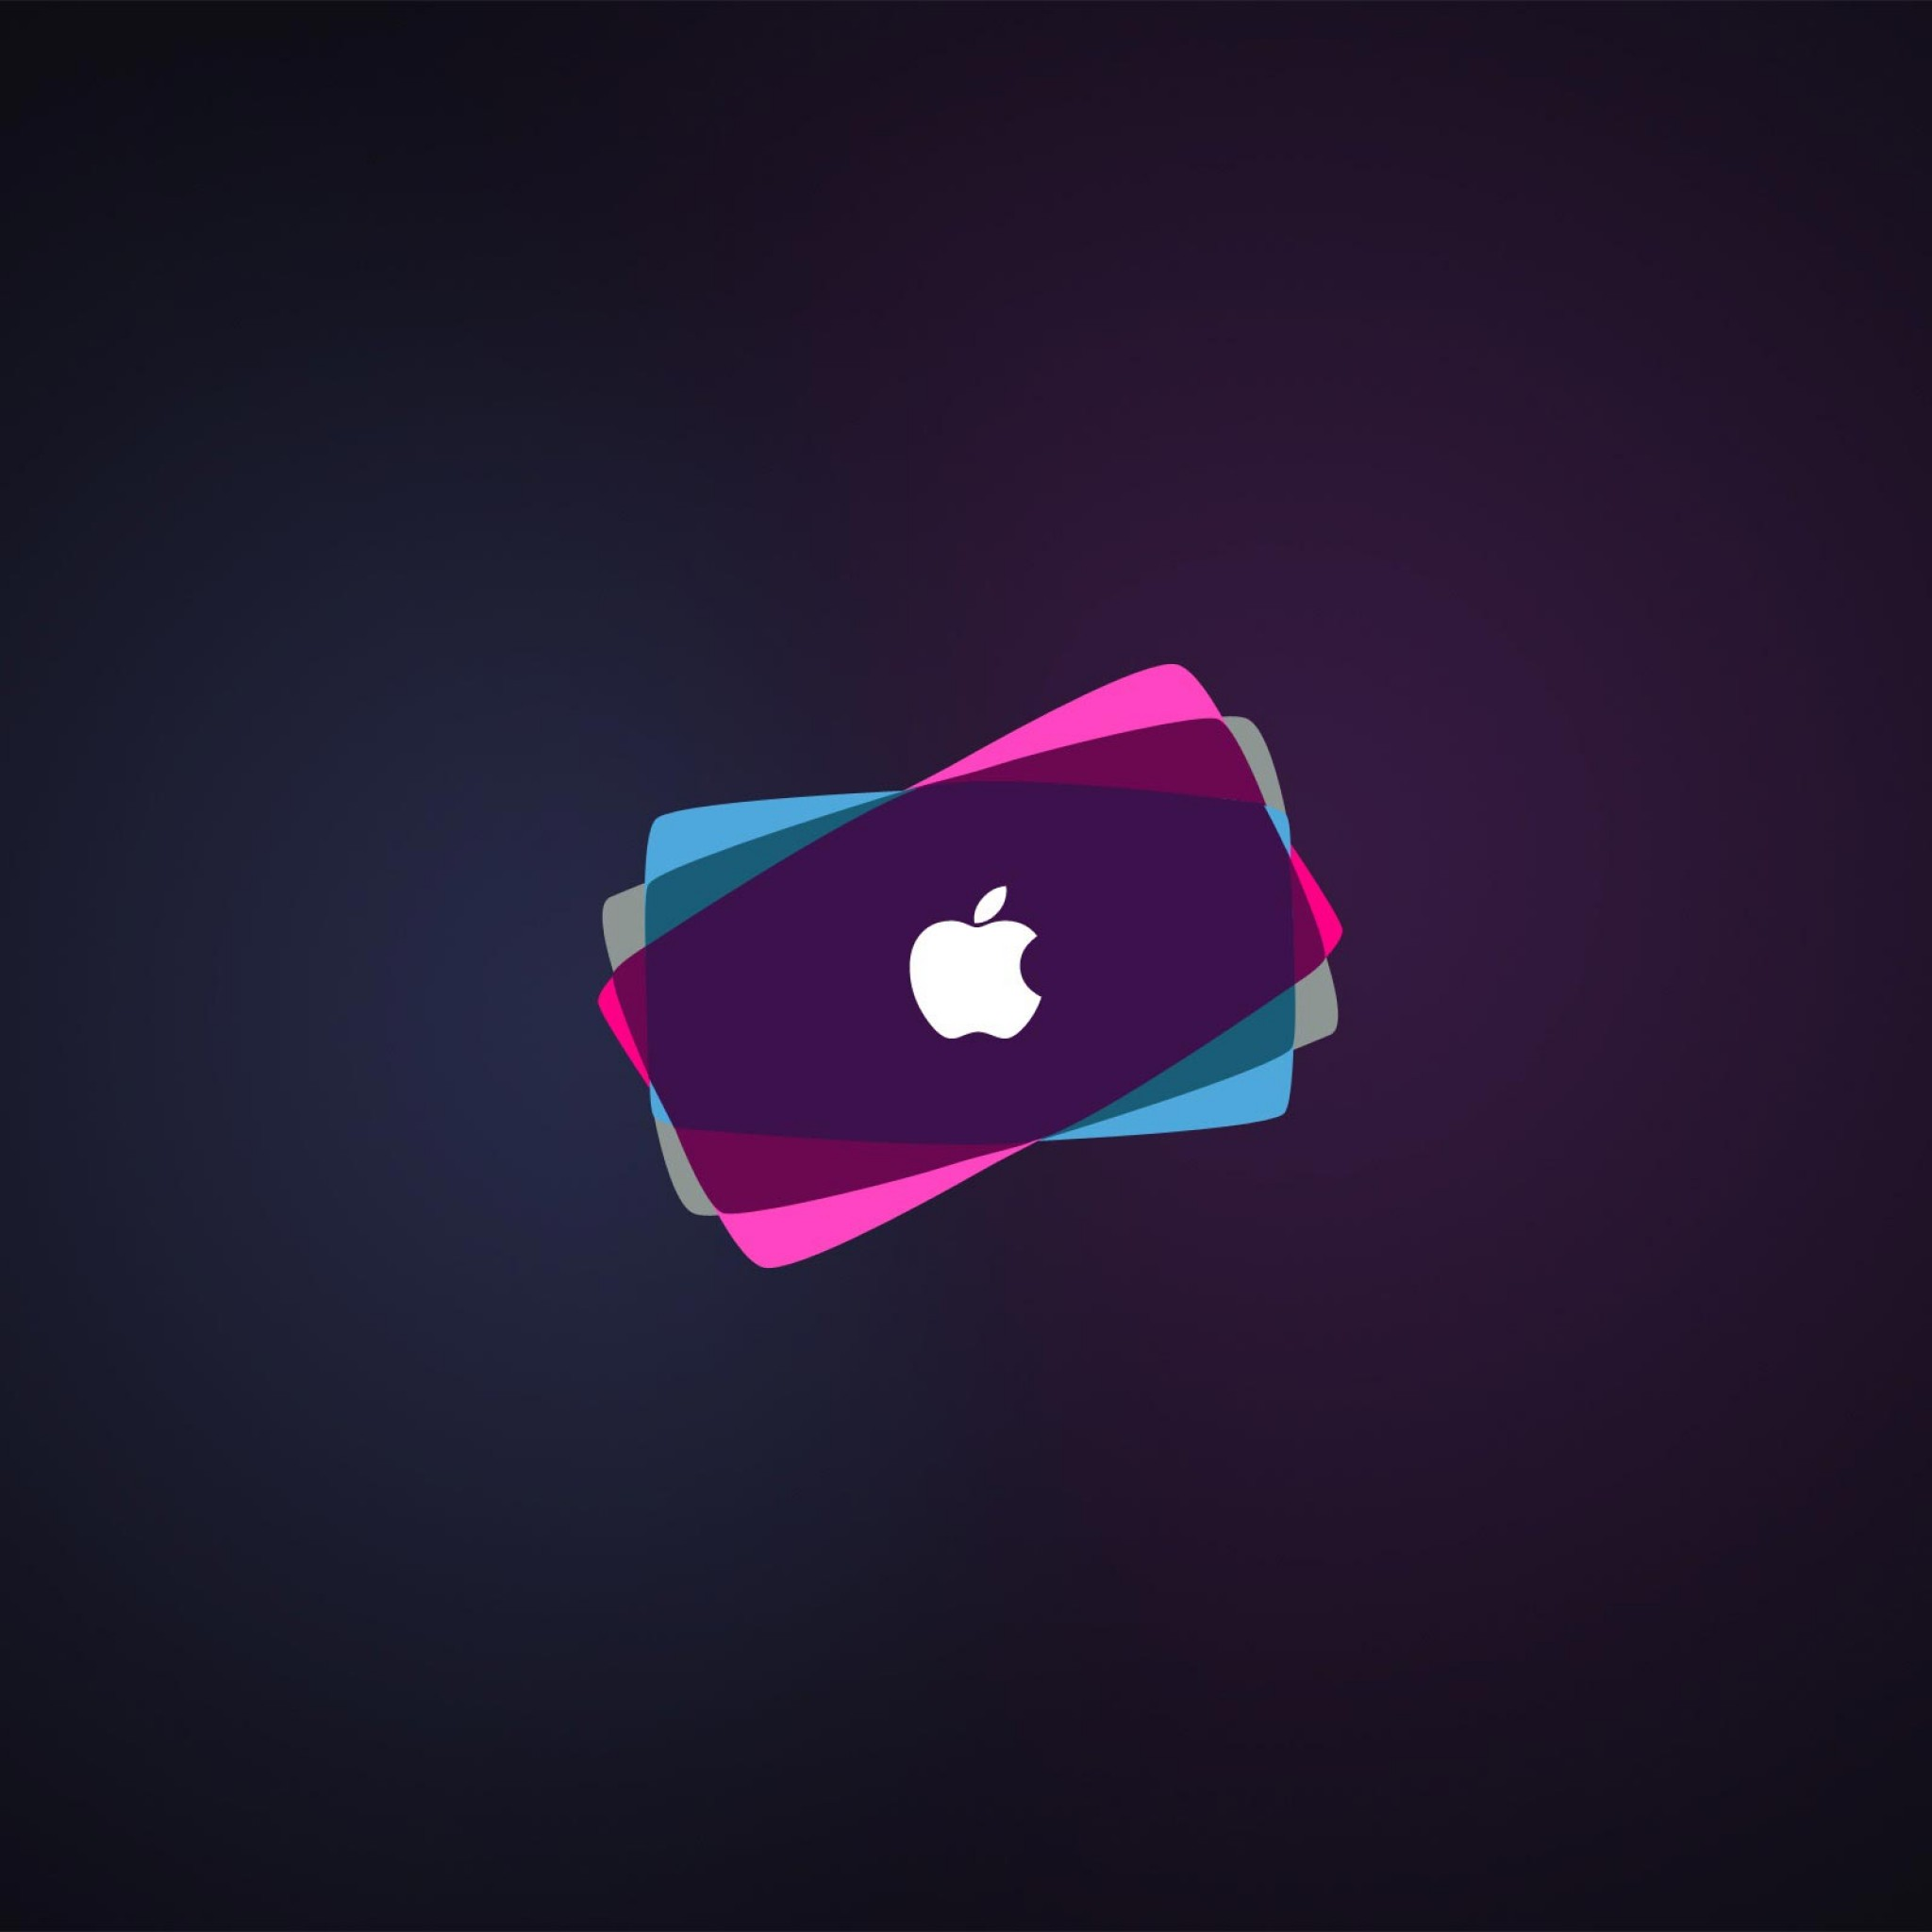 Hd wallpaper ipad - To Download Or See The Full Width Preview Right Click On The Image